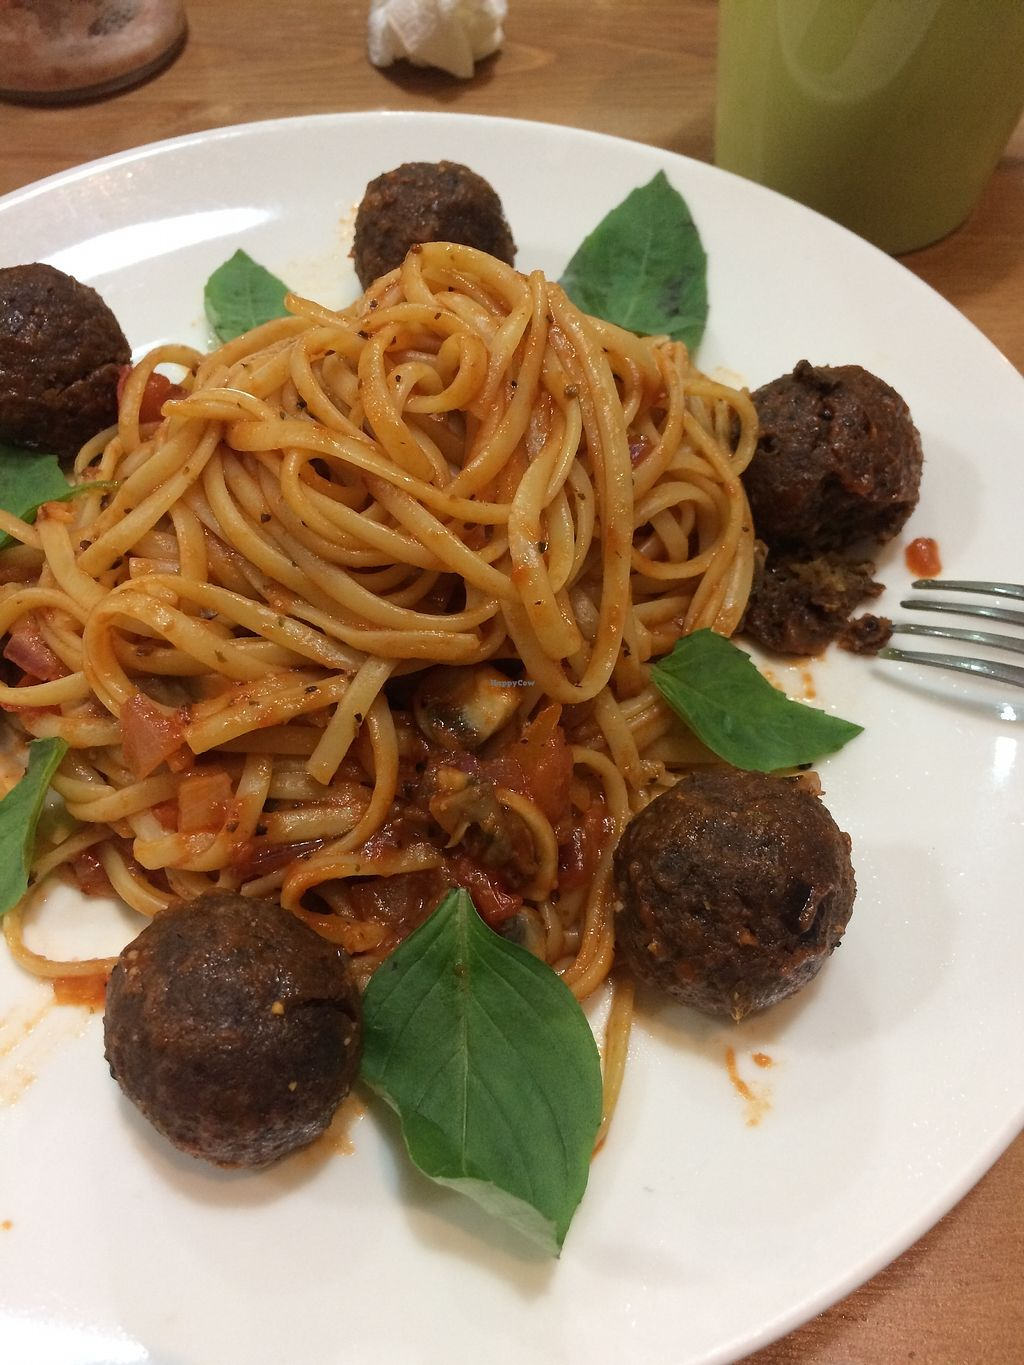 "Photo of Farmer's Kitchen  by <a href=""/members/profile/peasandunderstanding"">peasandunderstanding</a> <br/>The Eggplant M*atballs from Farmer's Kitchen; with fresh basil and spaghetti tossed in hearty tomato sauce.  <br/> April 17, 2018  - <a href='/contact/abuse/image/92978/387237'>Report</a>"